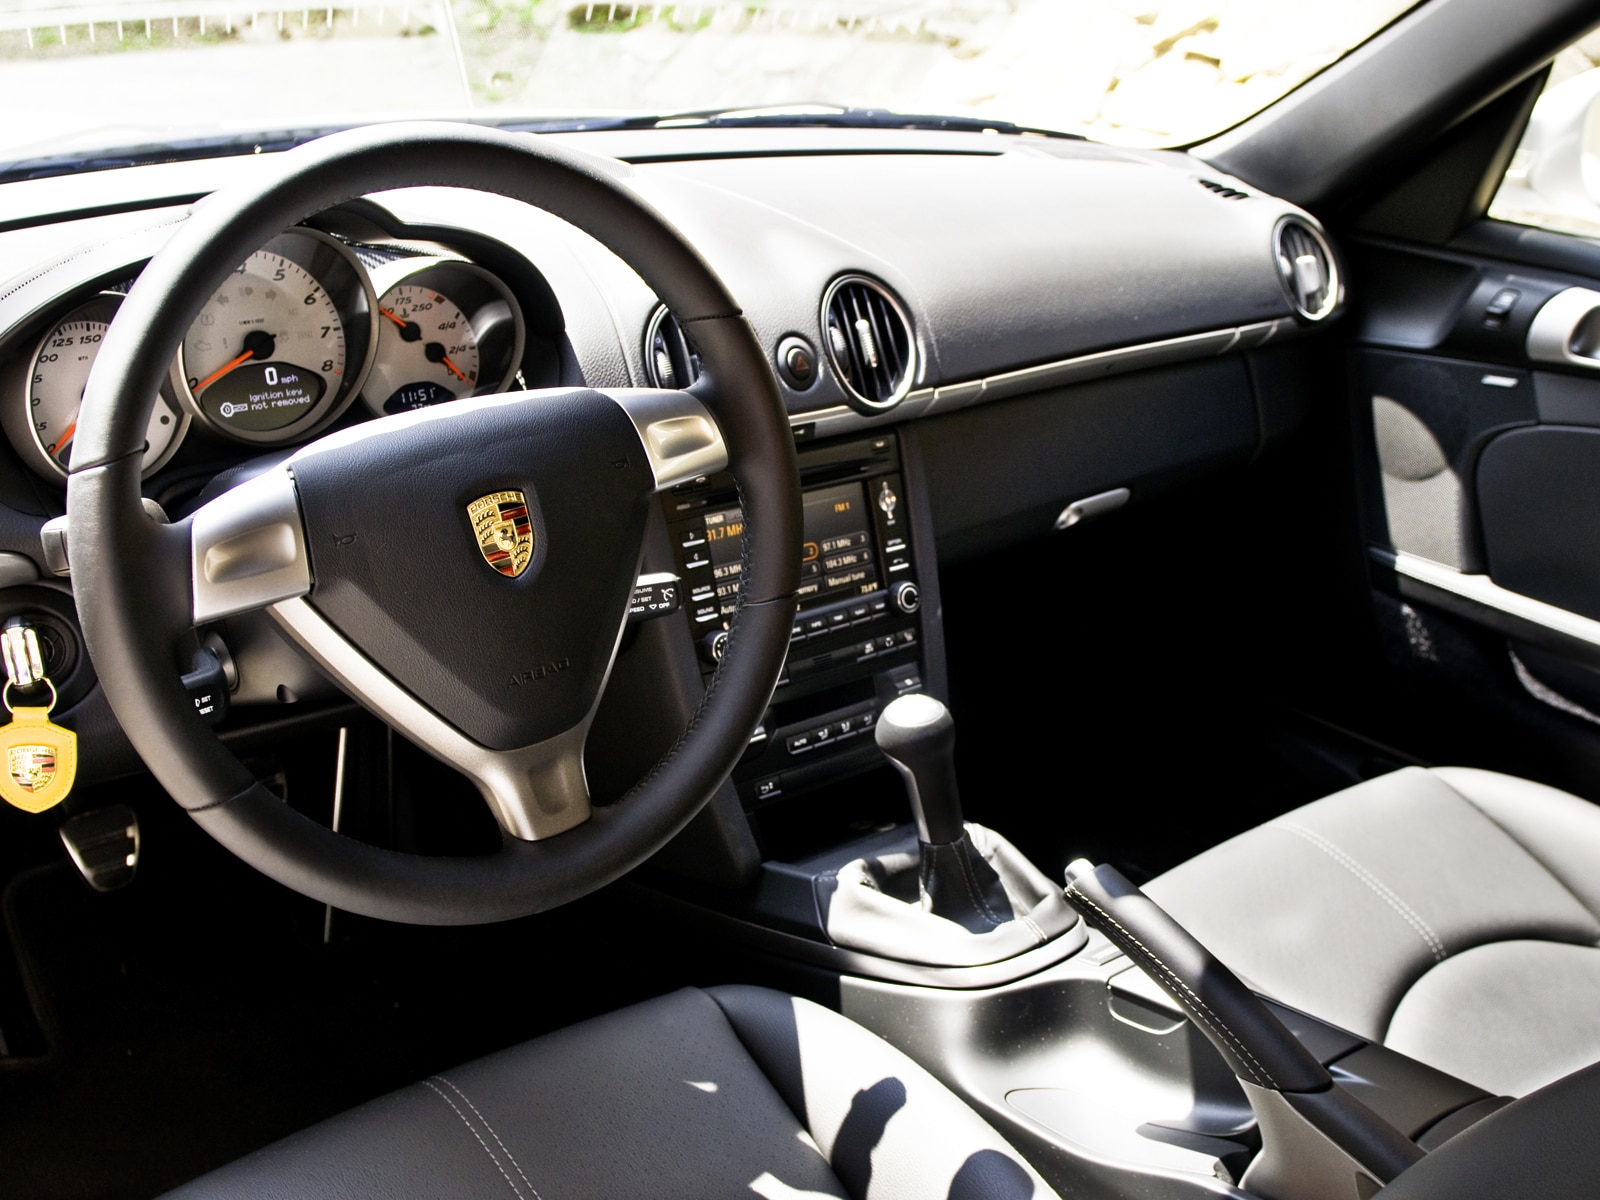 2009 Porsche Cayman S Porsche Sport Coupe Review